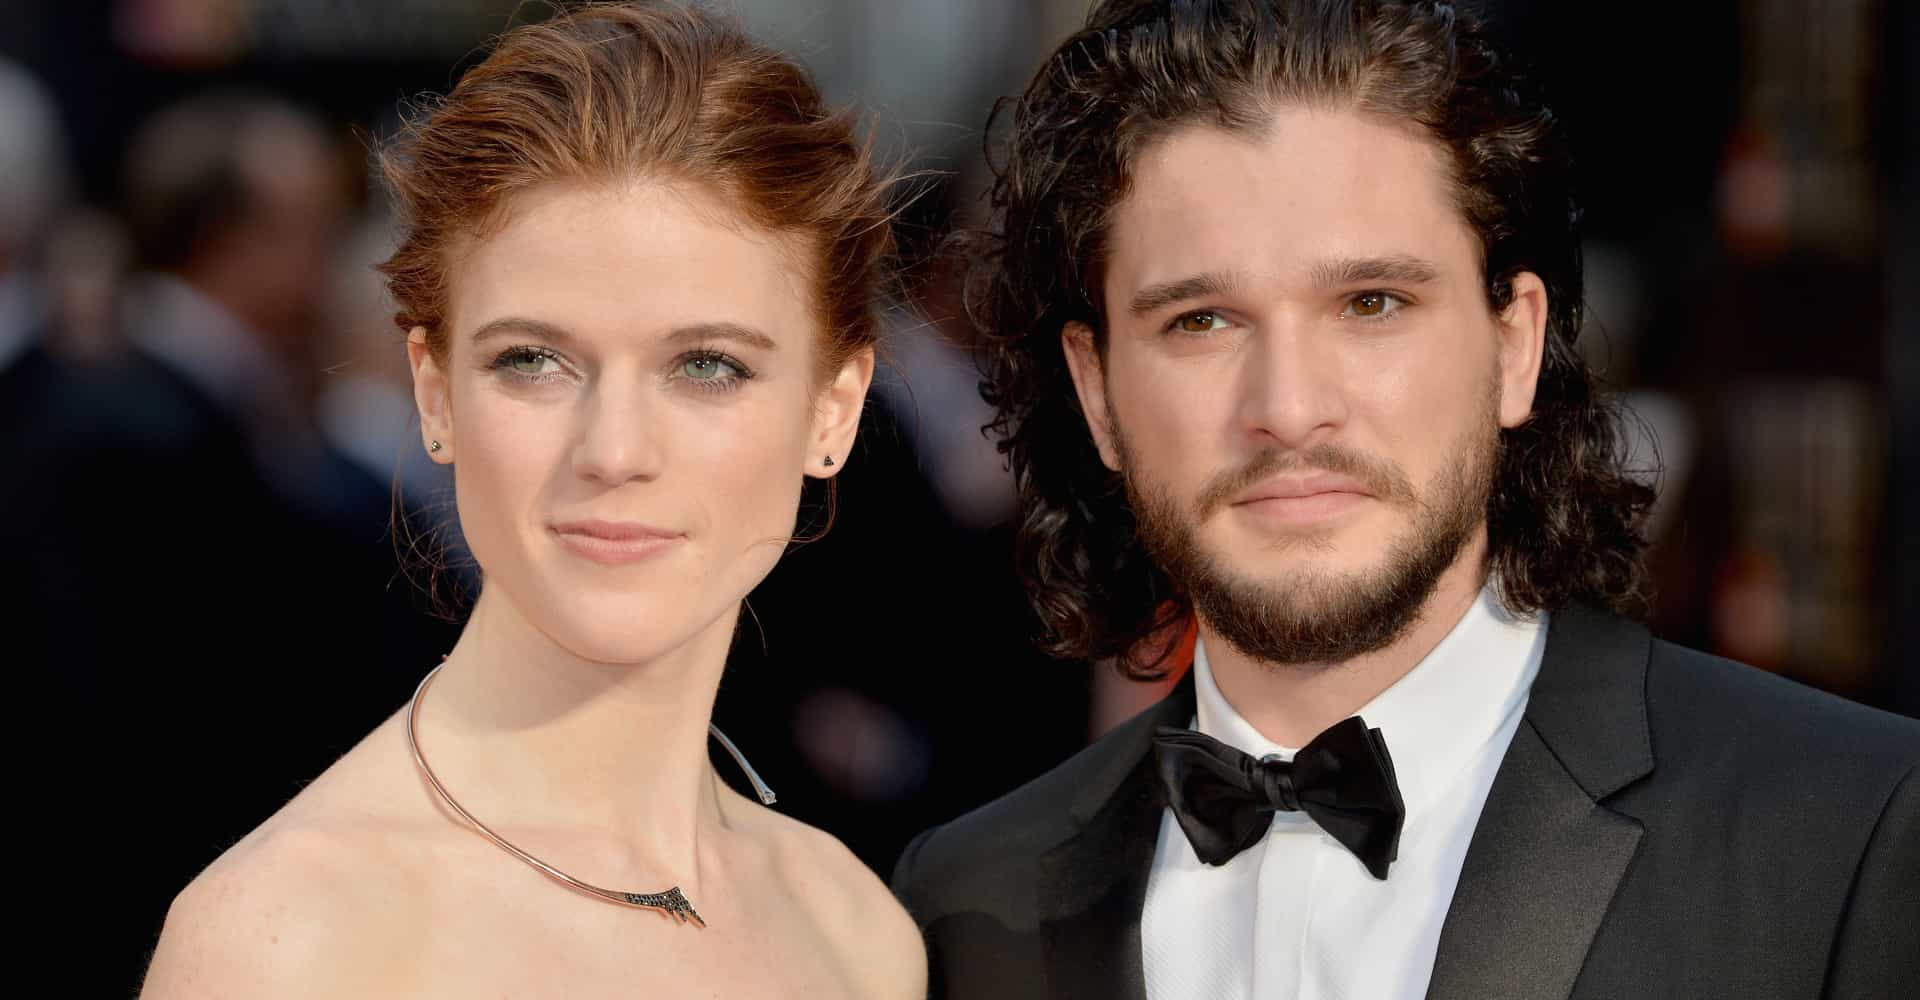 Couples are coming: The real-life partners of 'Game of Thrones' characters